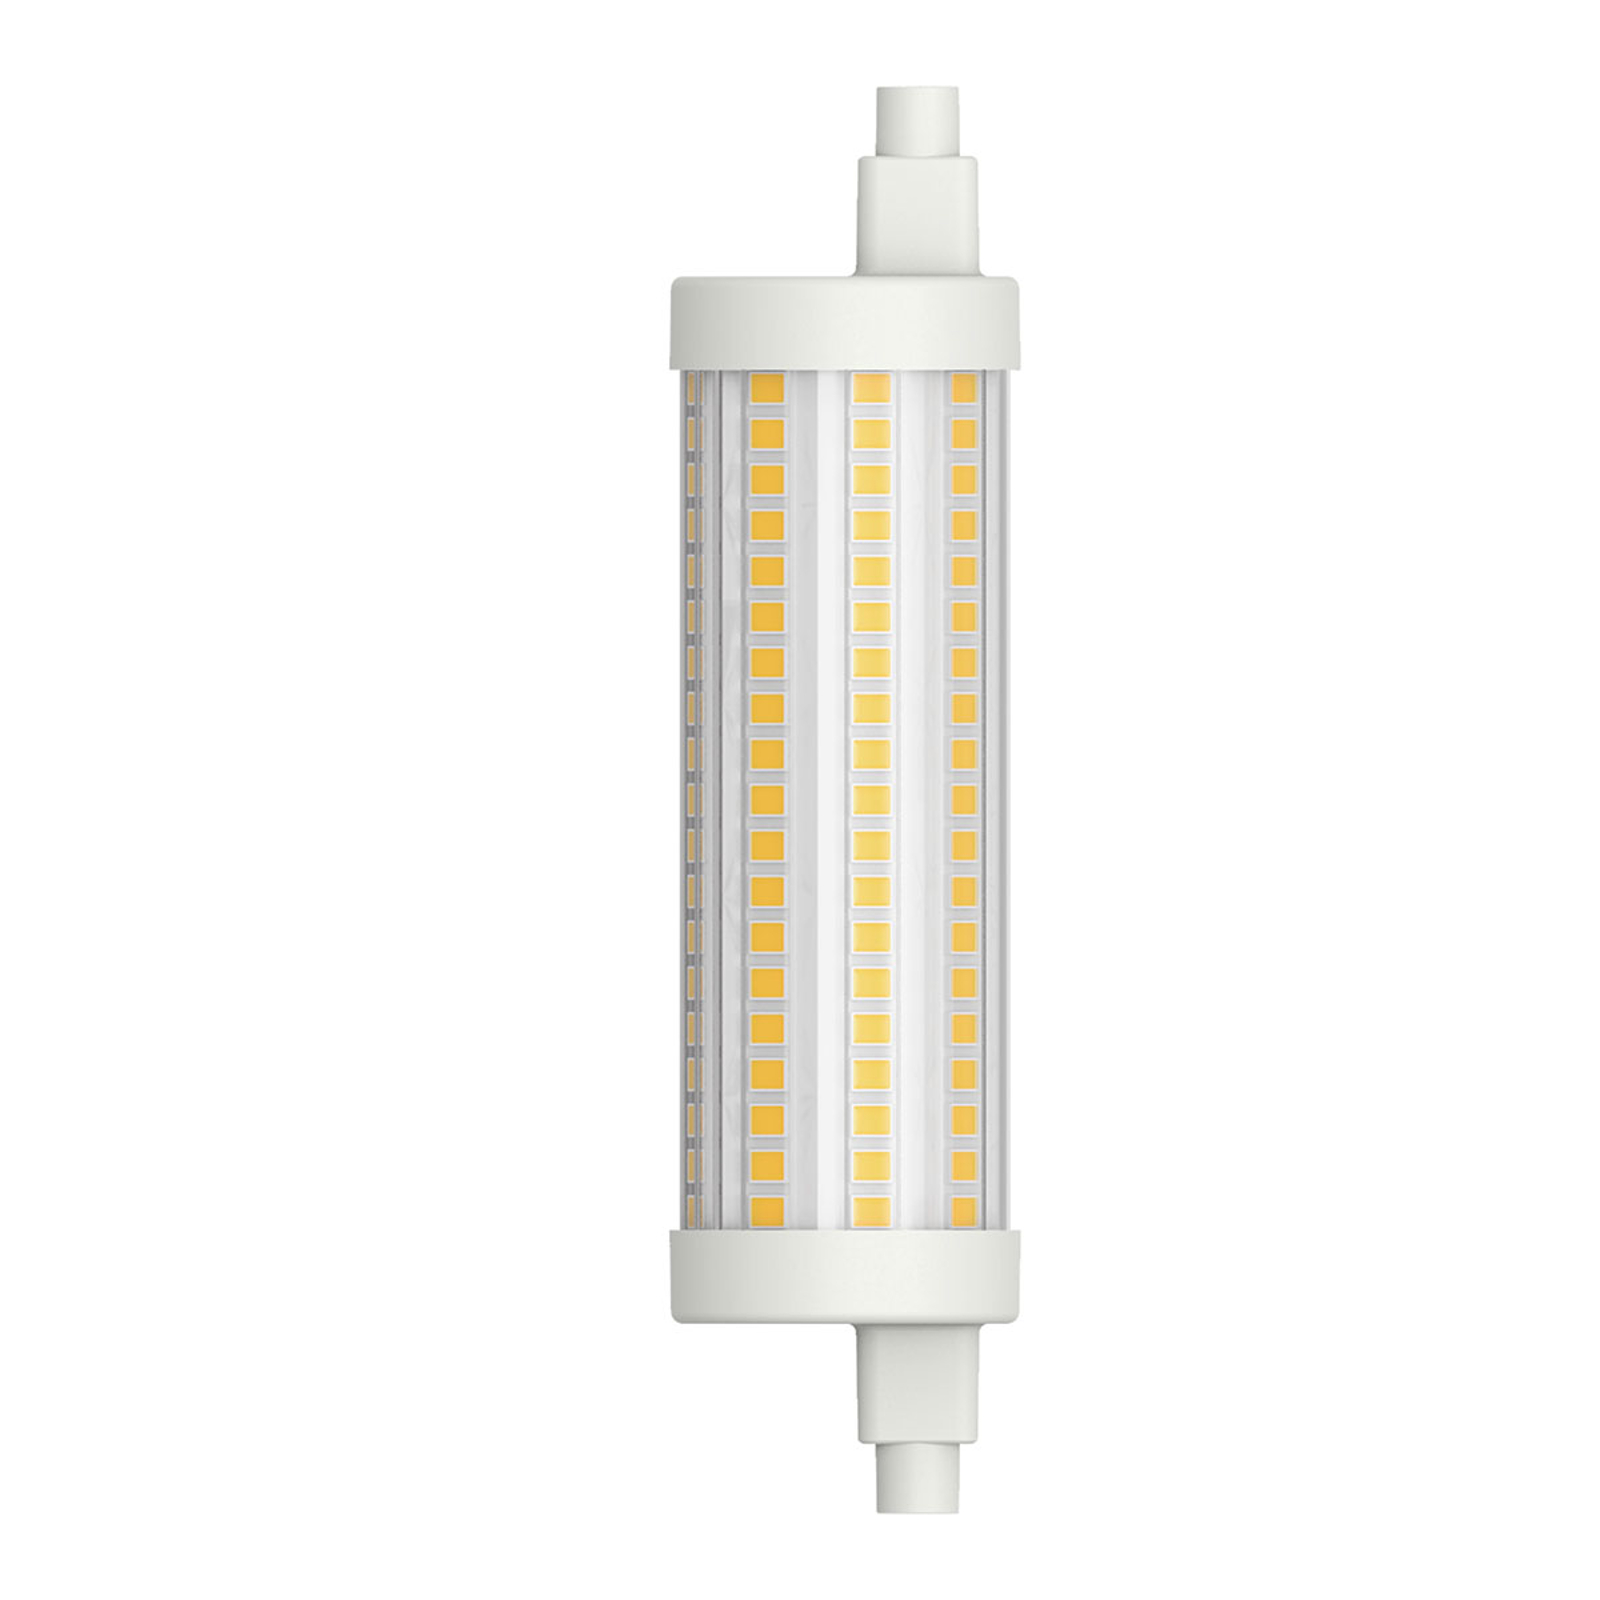 LED-Stablampe R7s 117,6 mm 15W warmweiß dimmbar